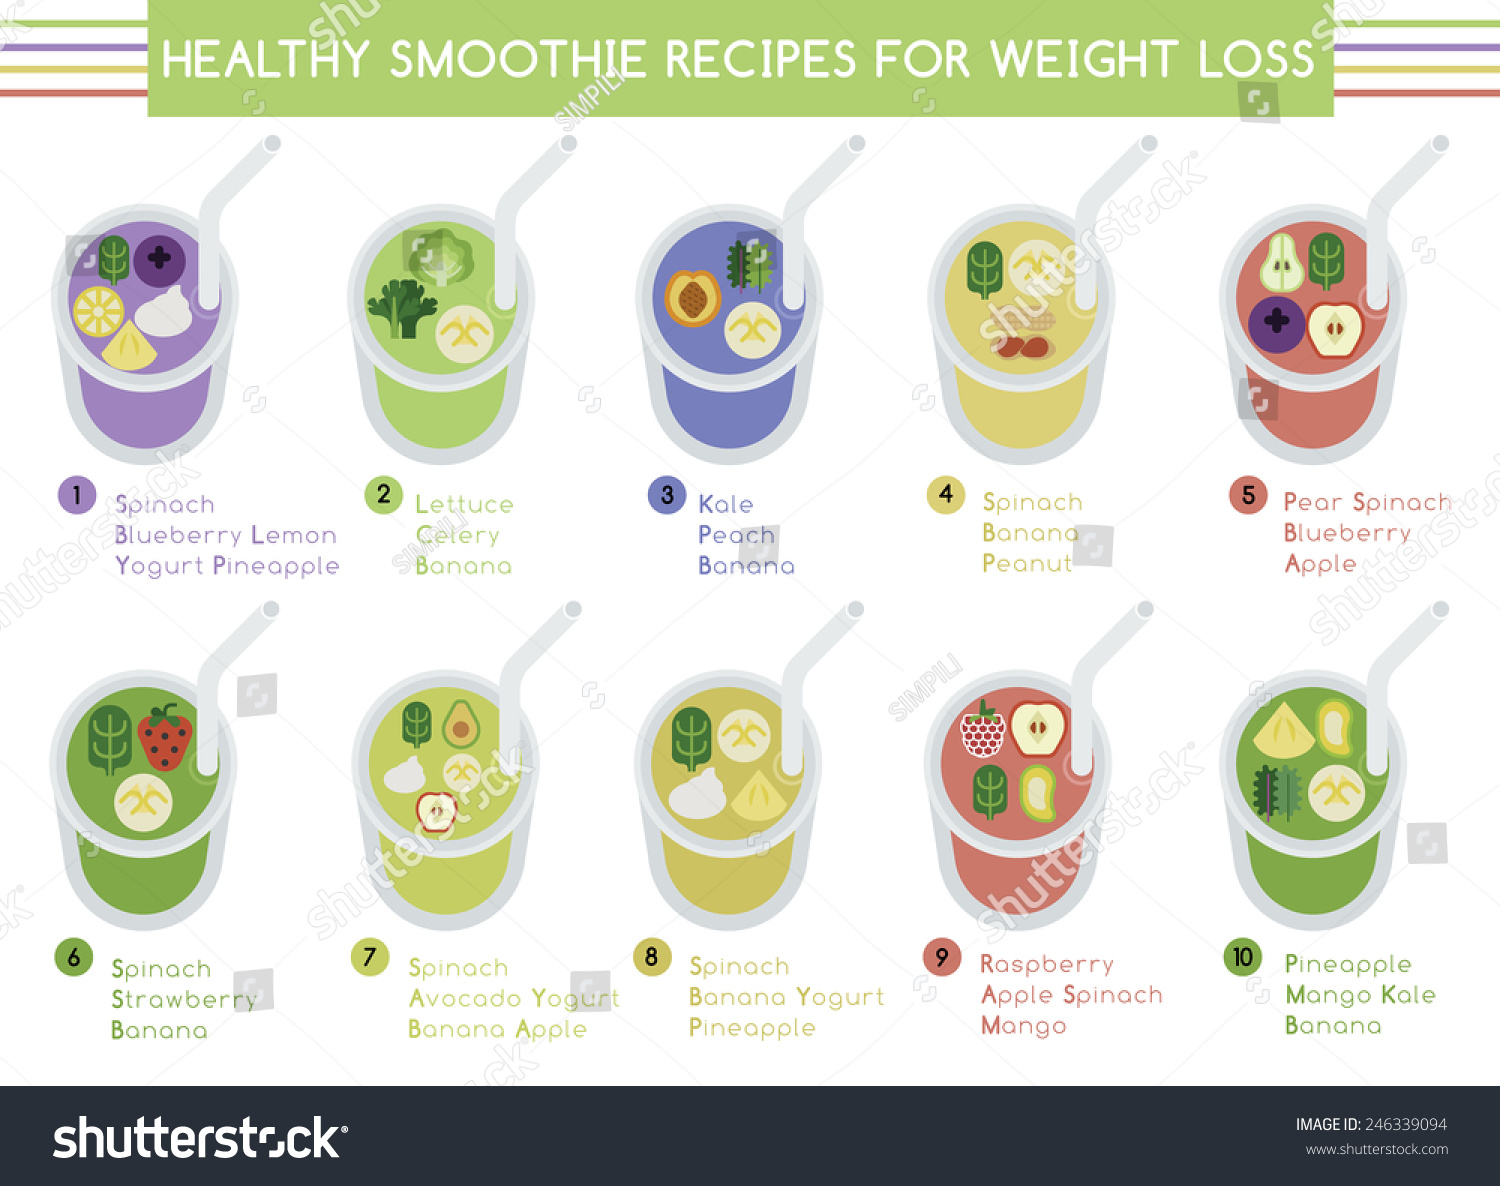 Workout routine to lose weight in 3 weeks image 2